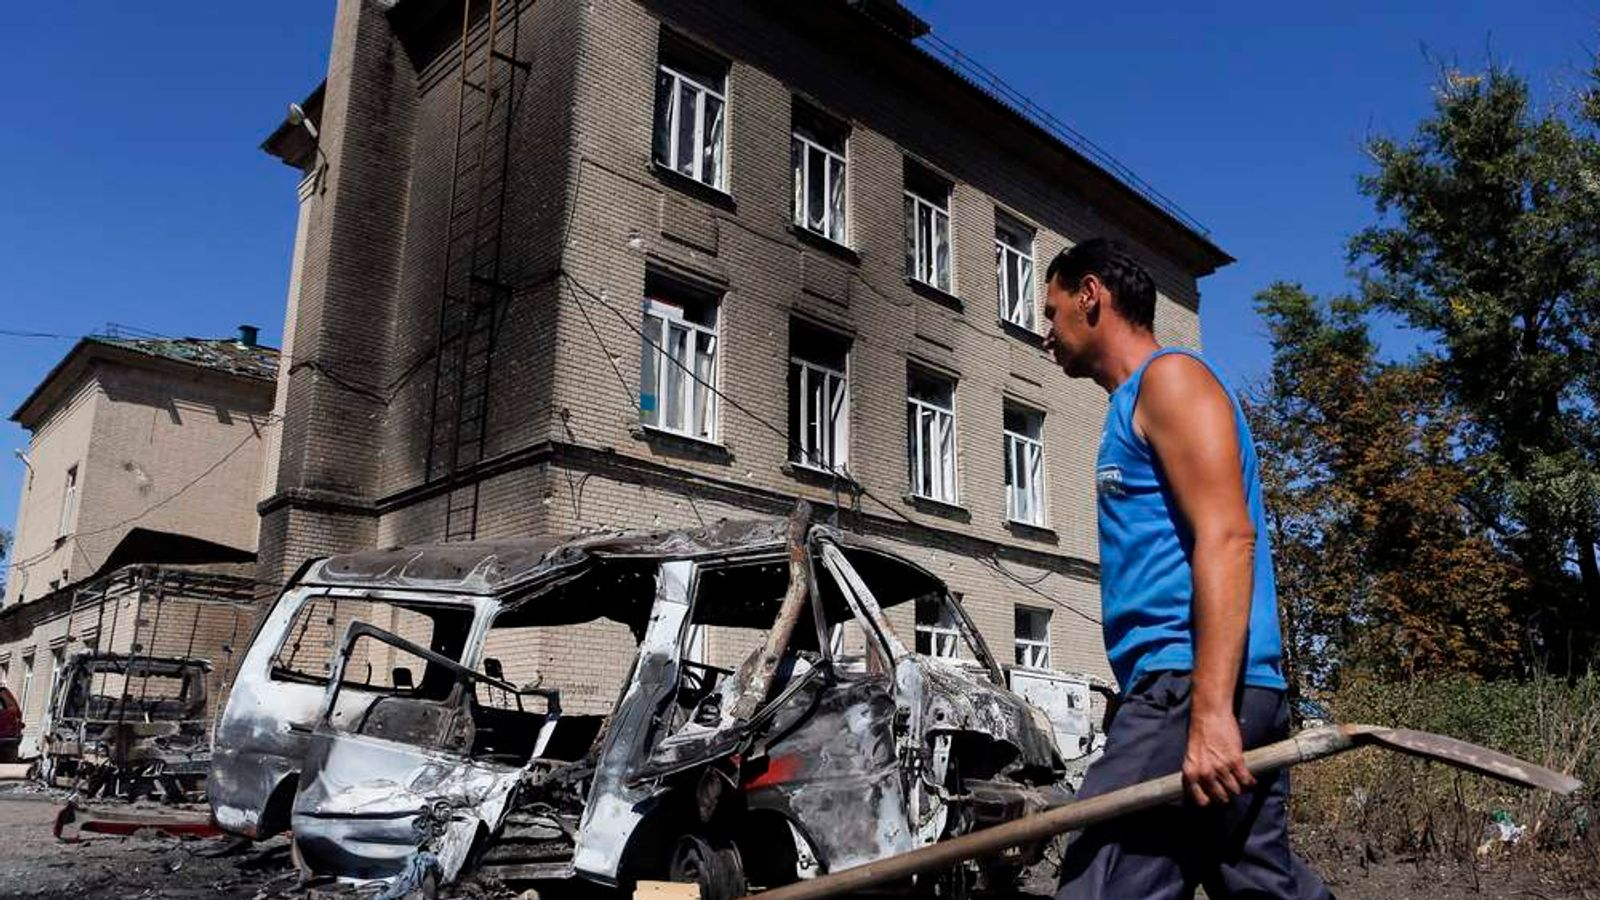 A man walks past vehicles destroyed during the recent shelling in the eastern Ukrainian town of Ilovaysk